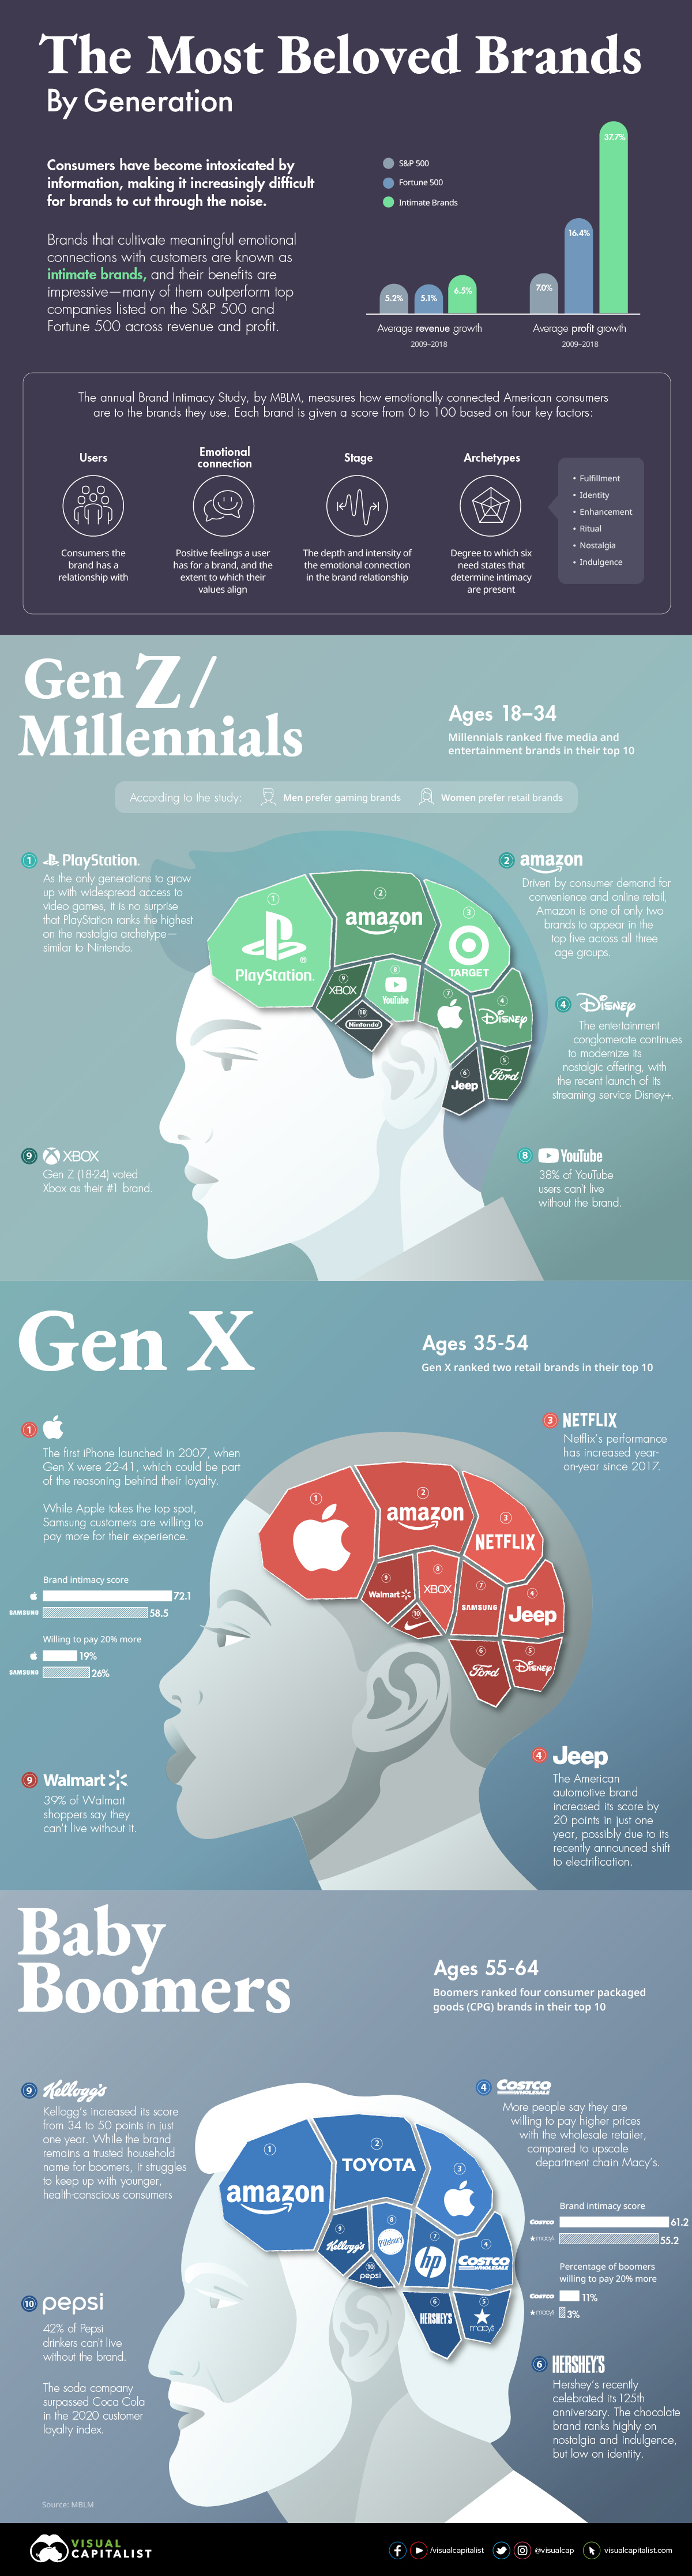 most loved brands by generation